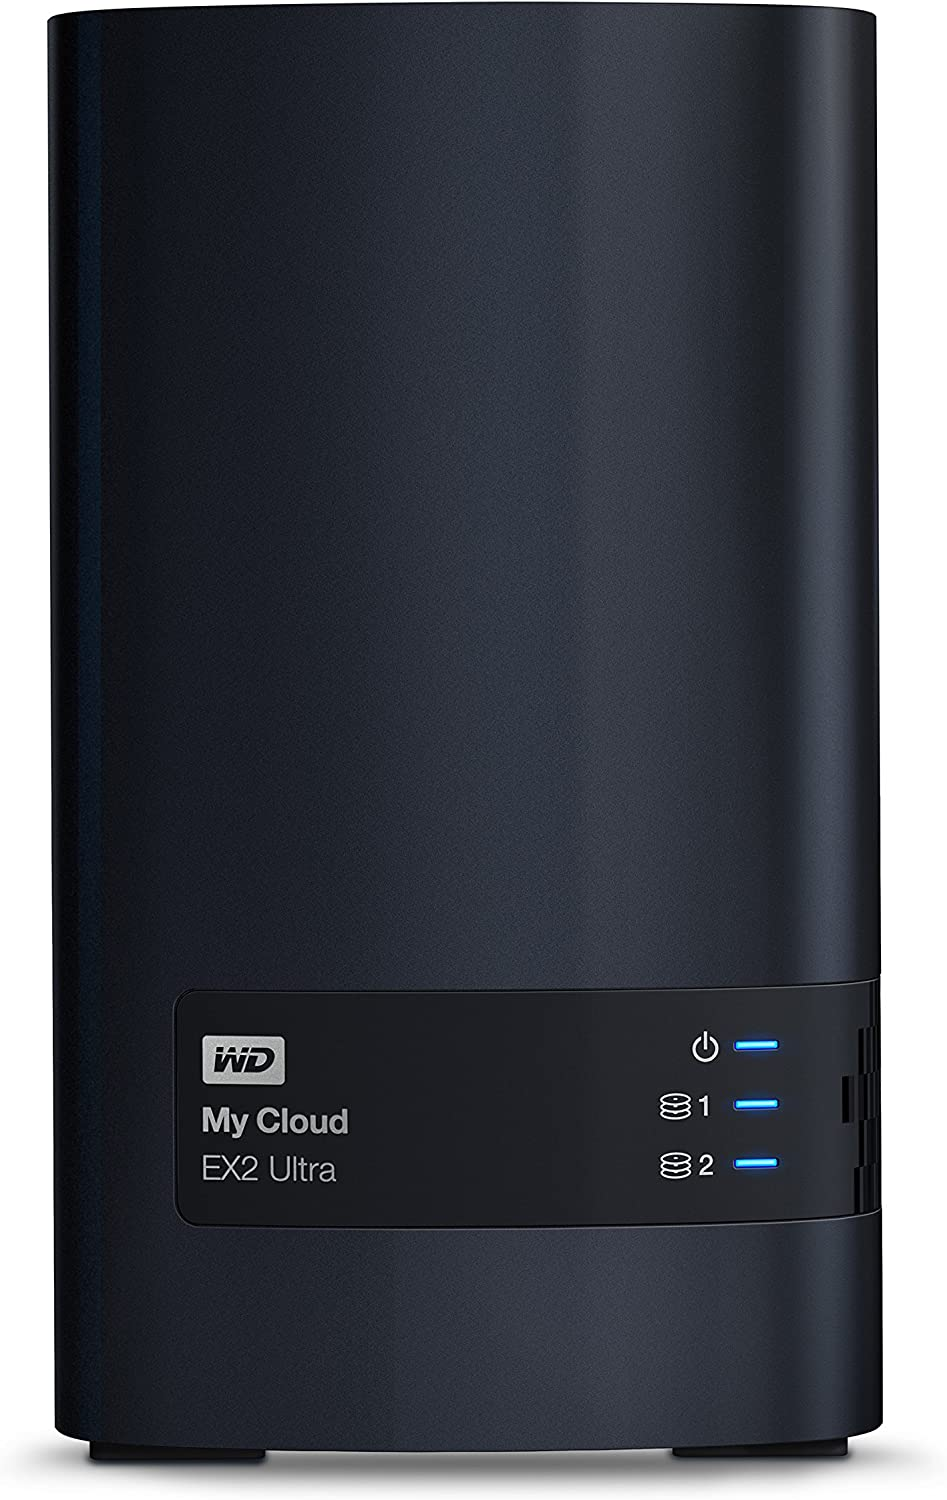 TALLA 6 TB. WD 6TB My Cloud EX2 Ultra Almacenamiento en Red